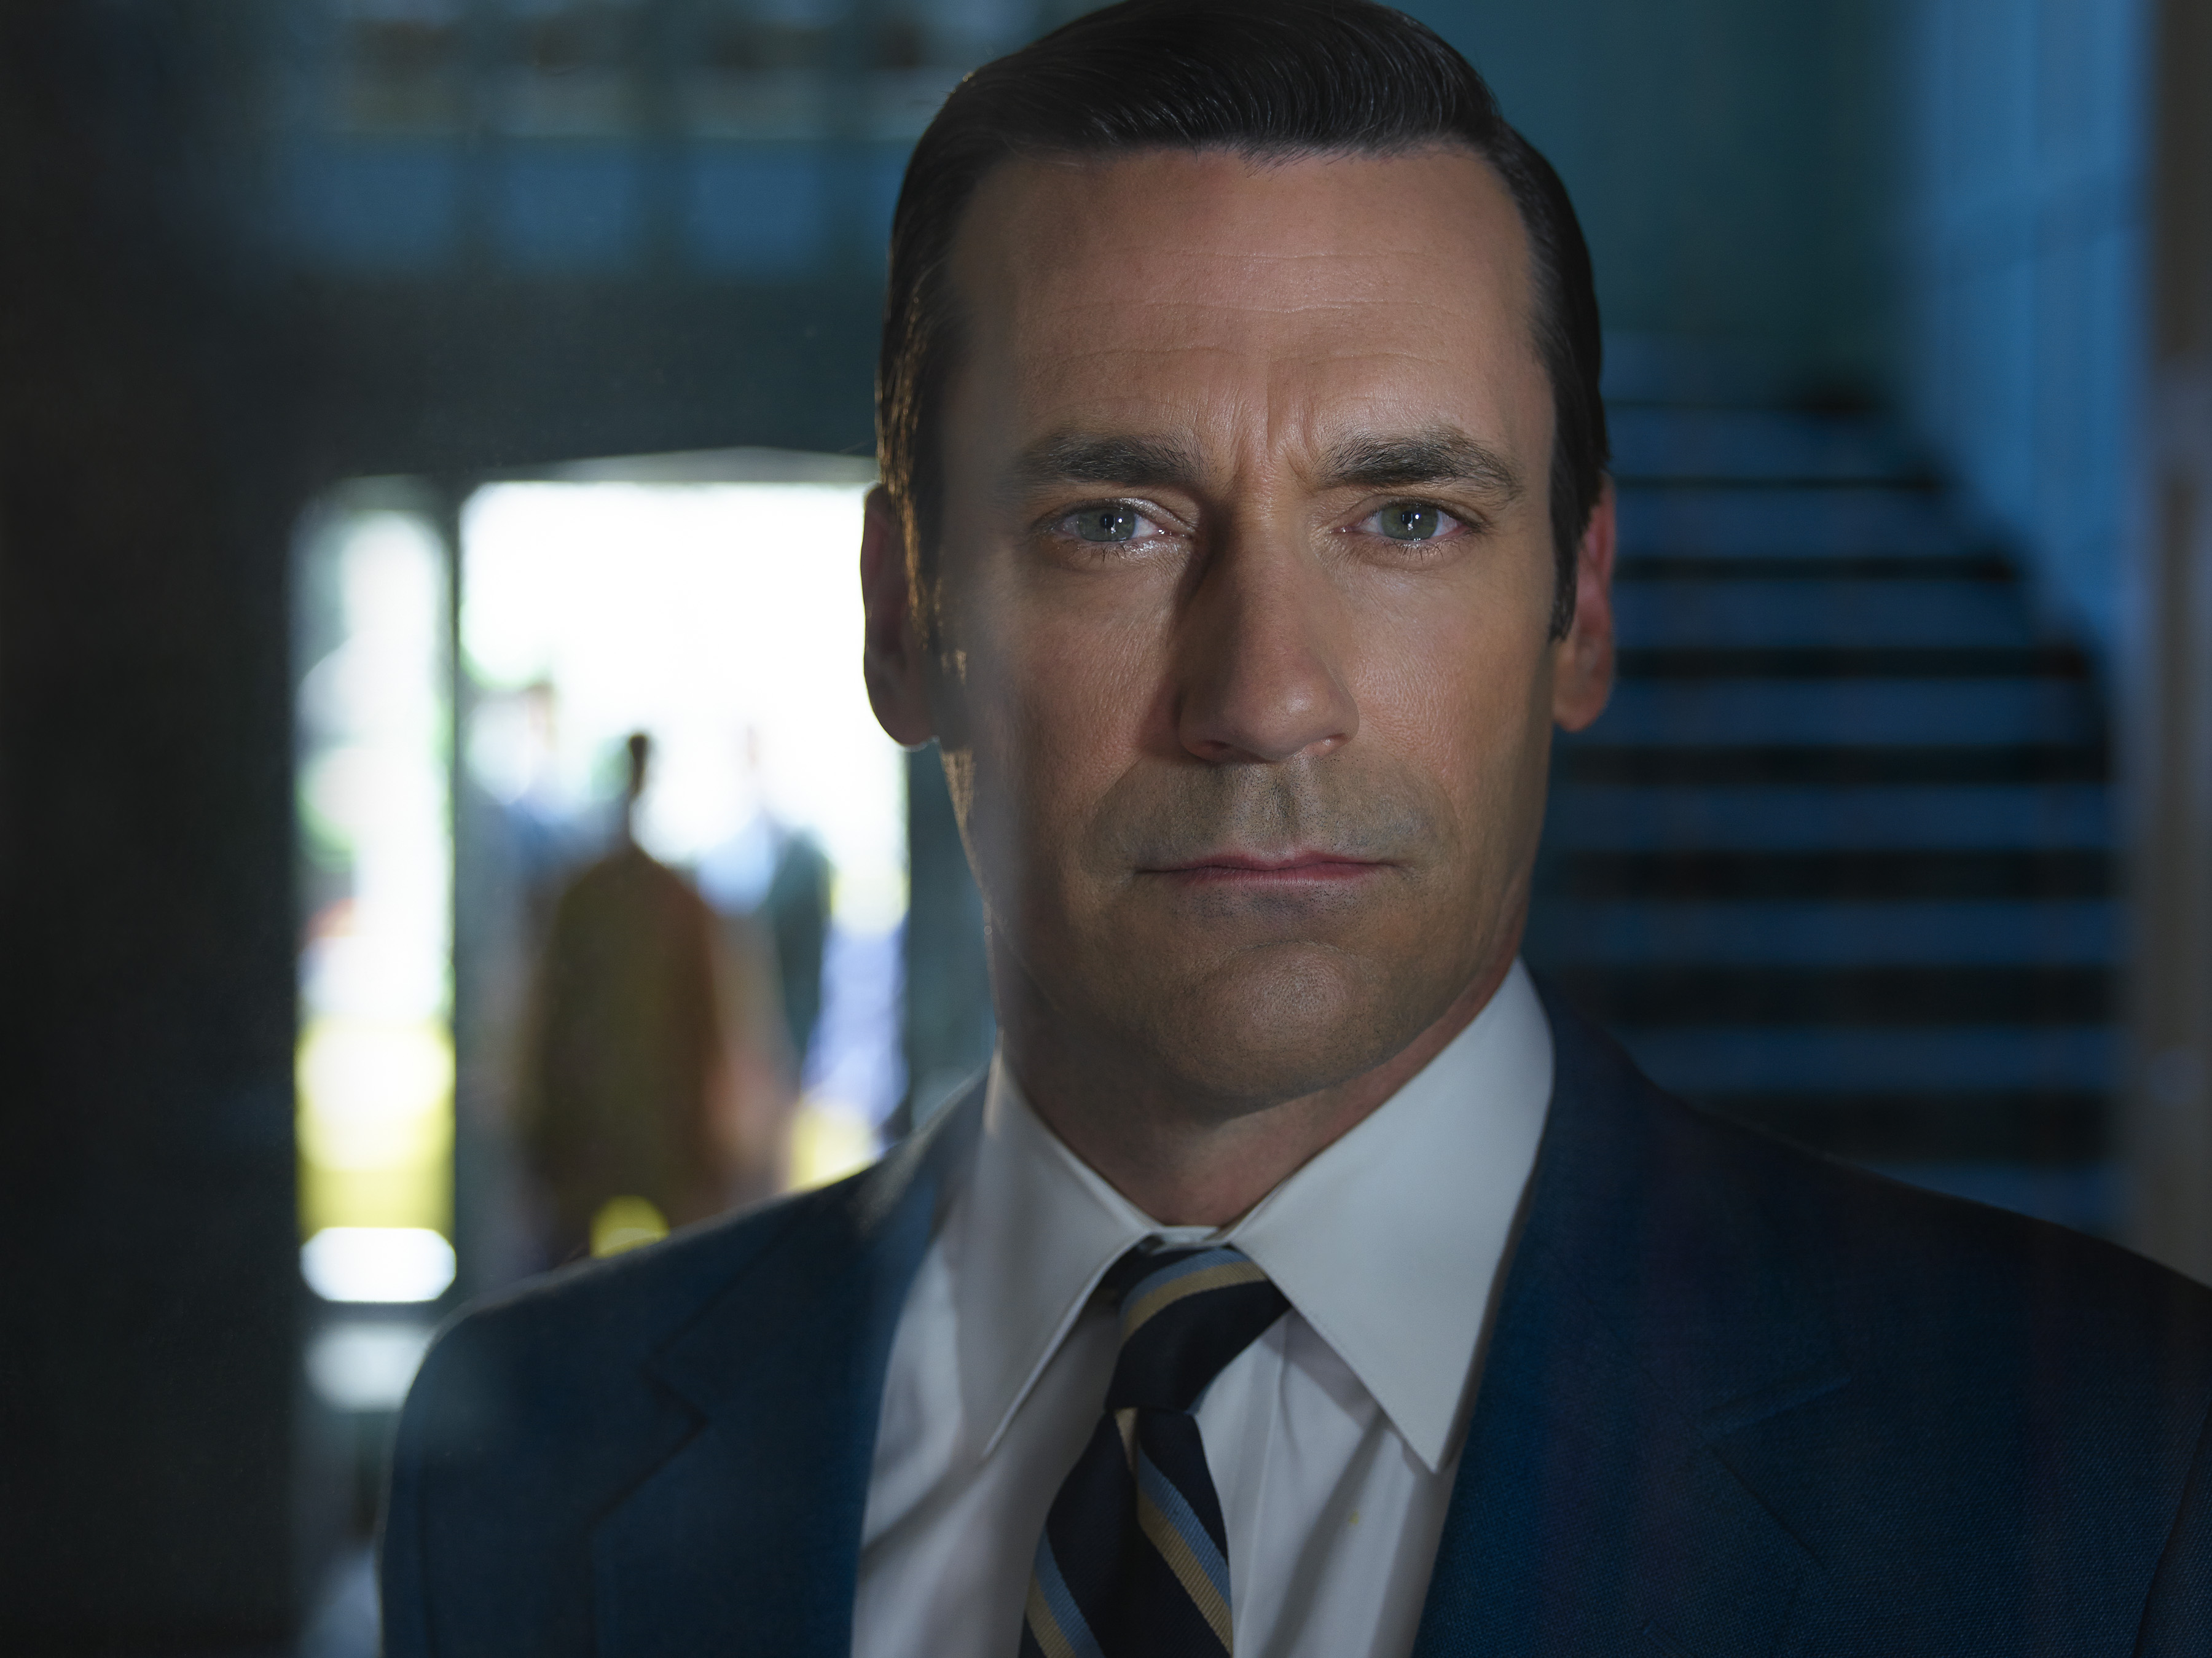 Don Draper (Jon Hamm) may be stylish, but he's also confronting the specter of the life not lived.